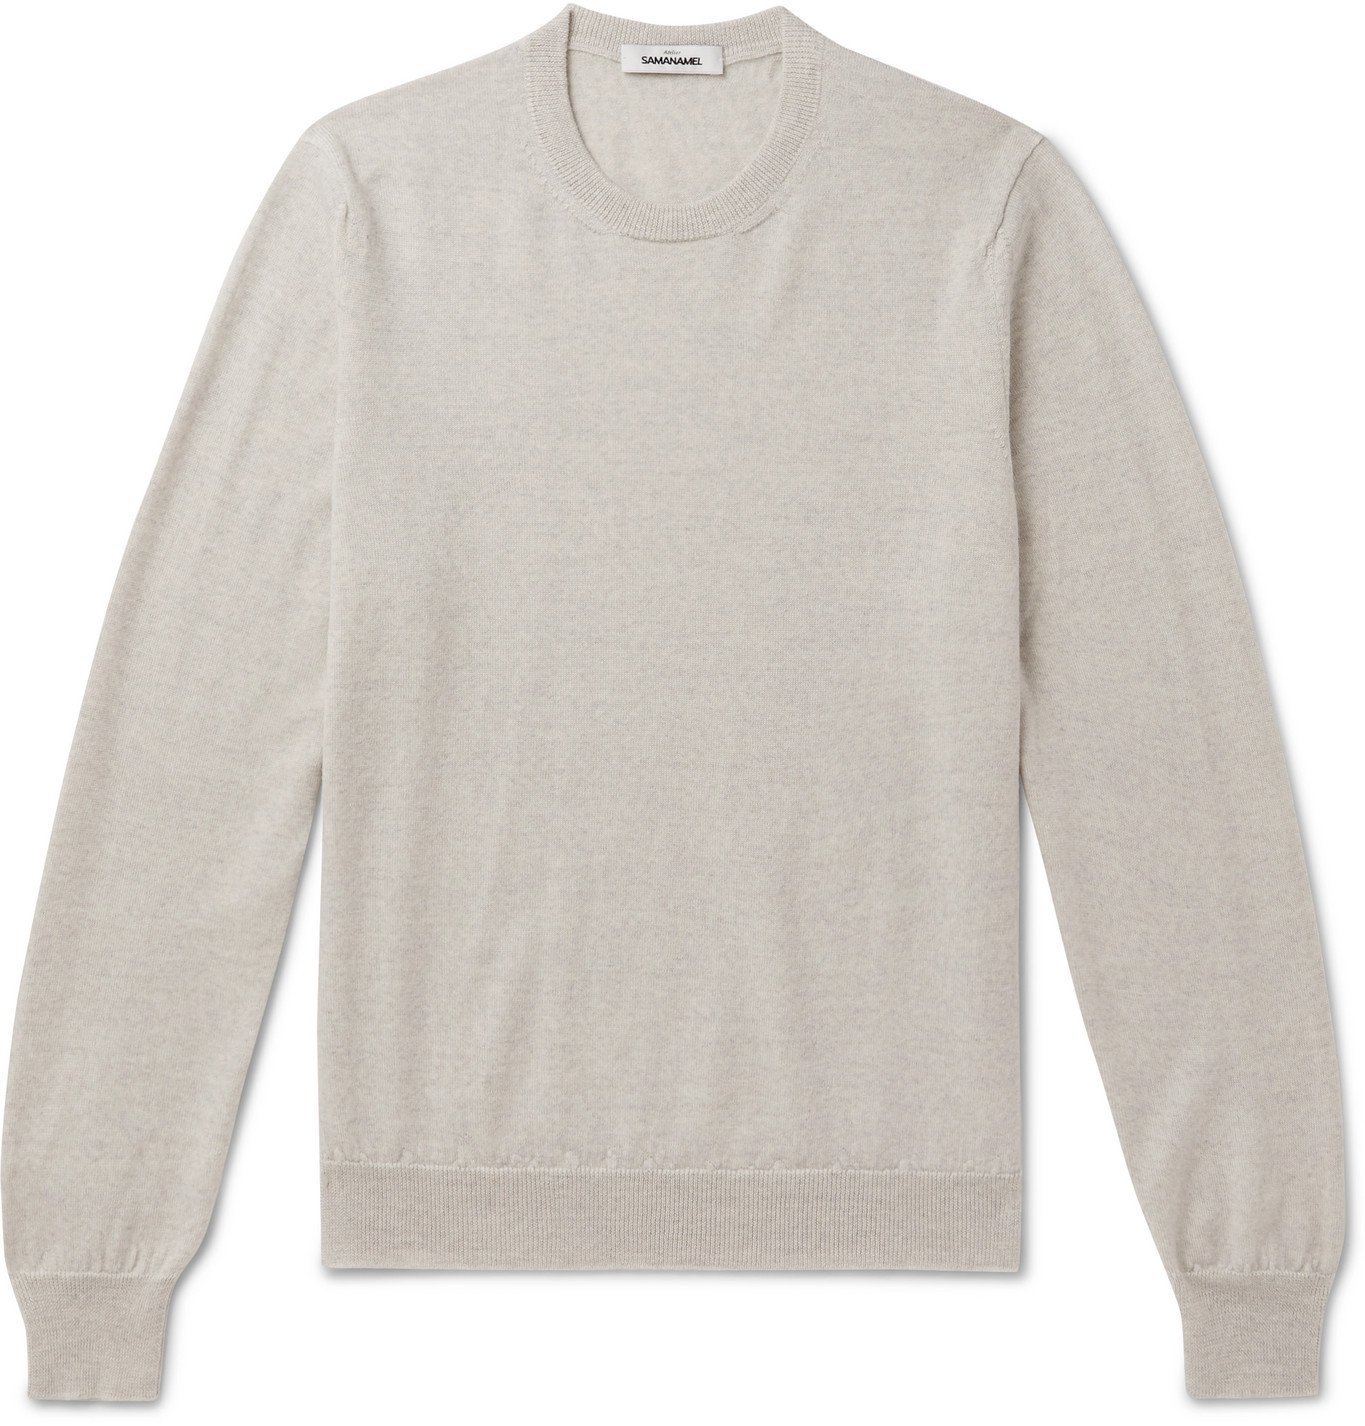 Saman Amel - Merino Wool Sweater - Gray